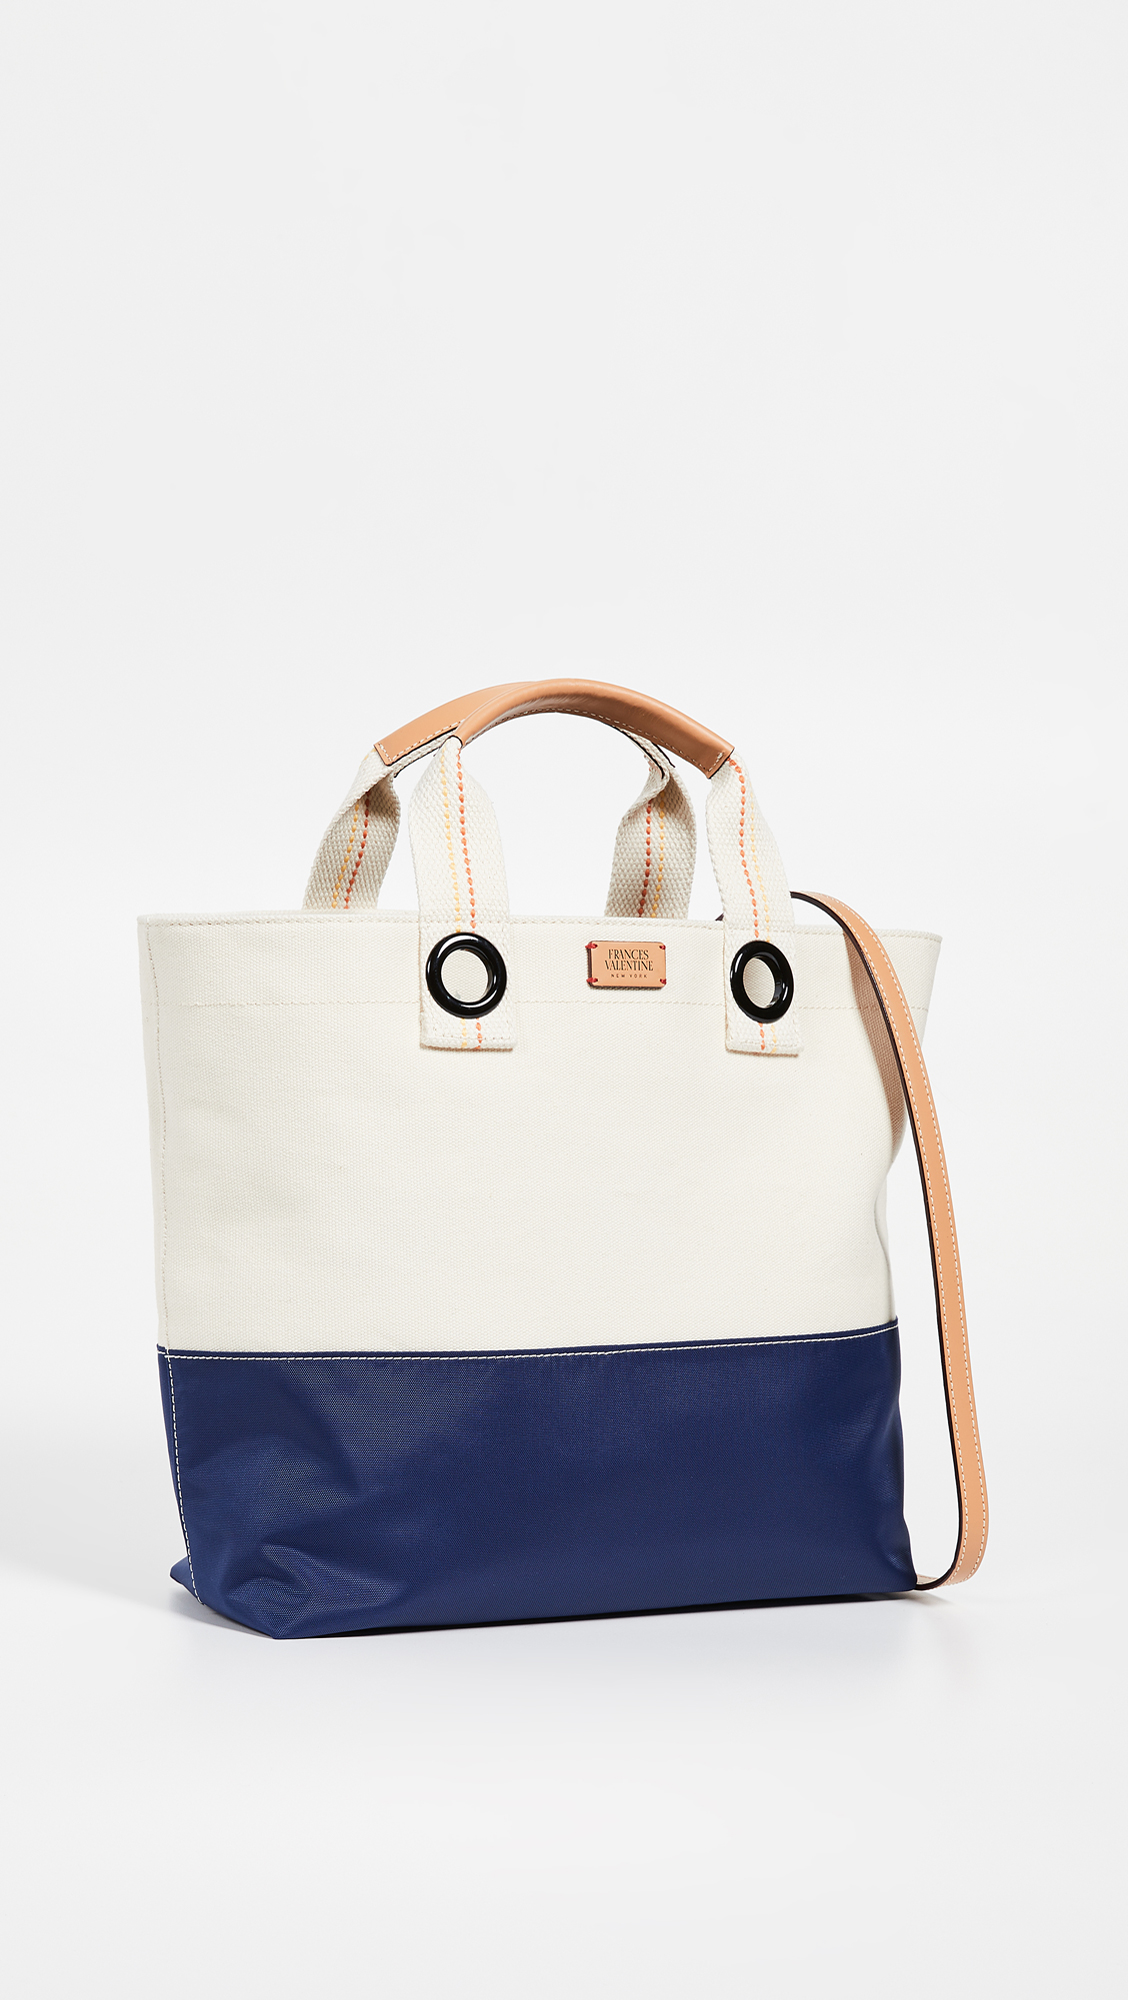 Frances Valentine Tote Bag